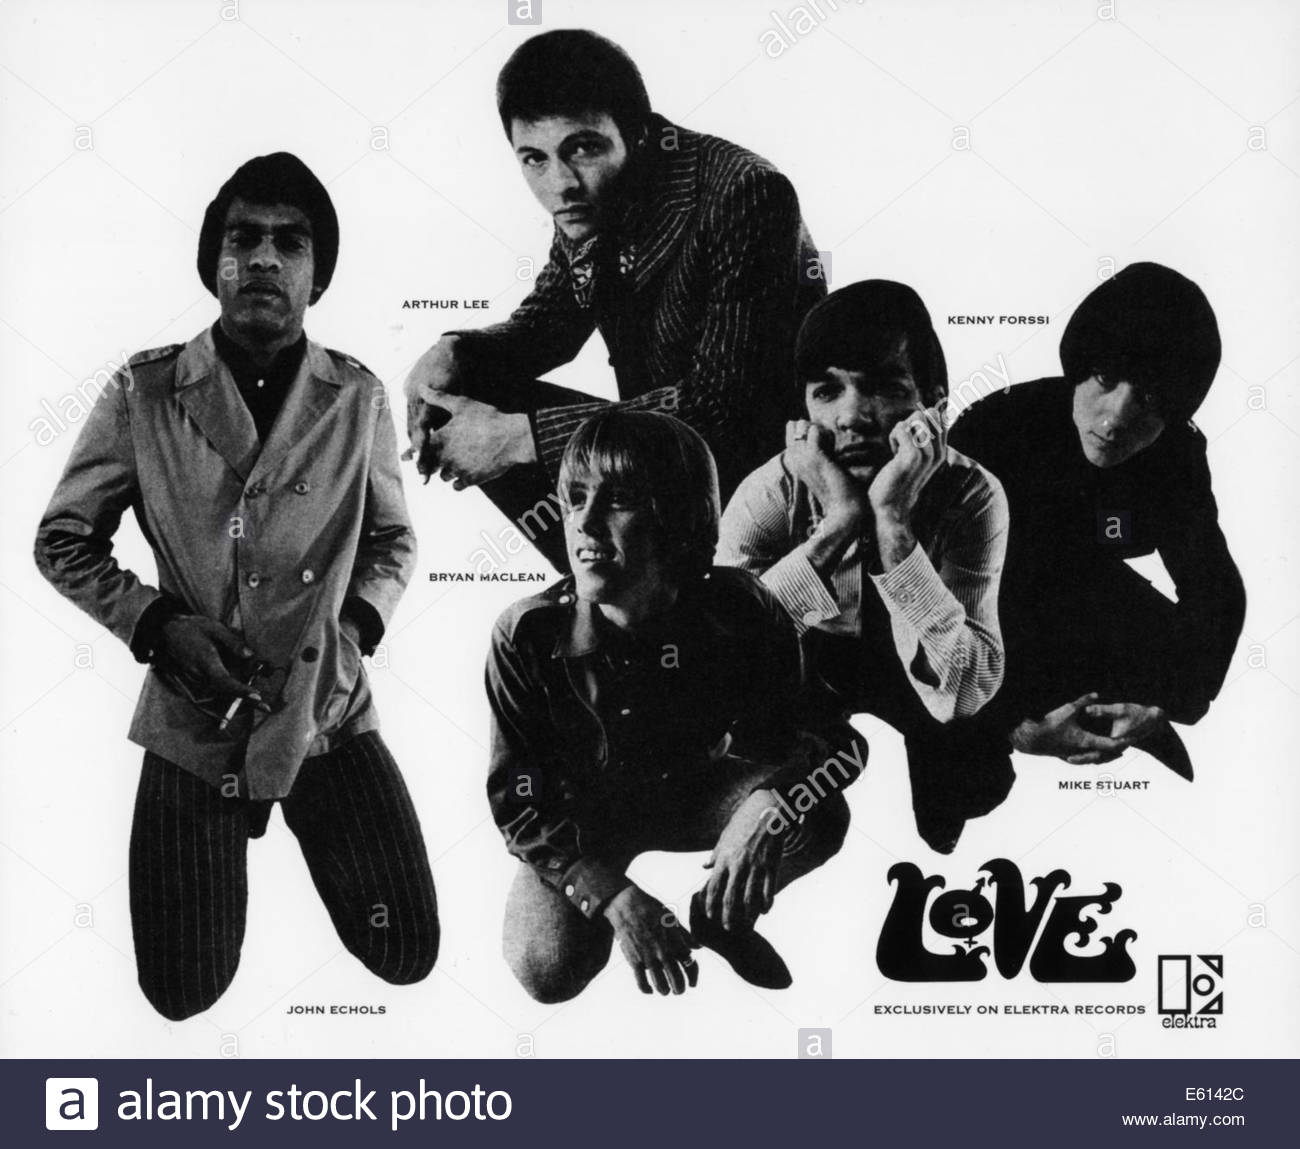 LOVE, the band circa 1960s featuring Arthur Lee.  Courtesy Granamour Weems Collection. - Stock Image